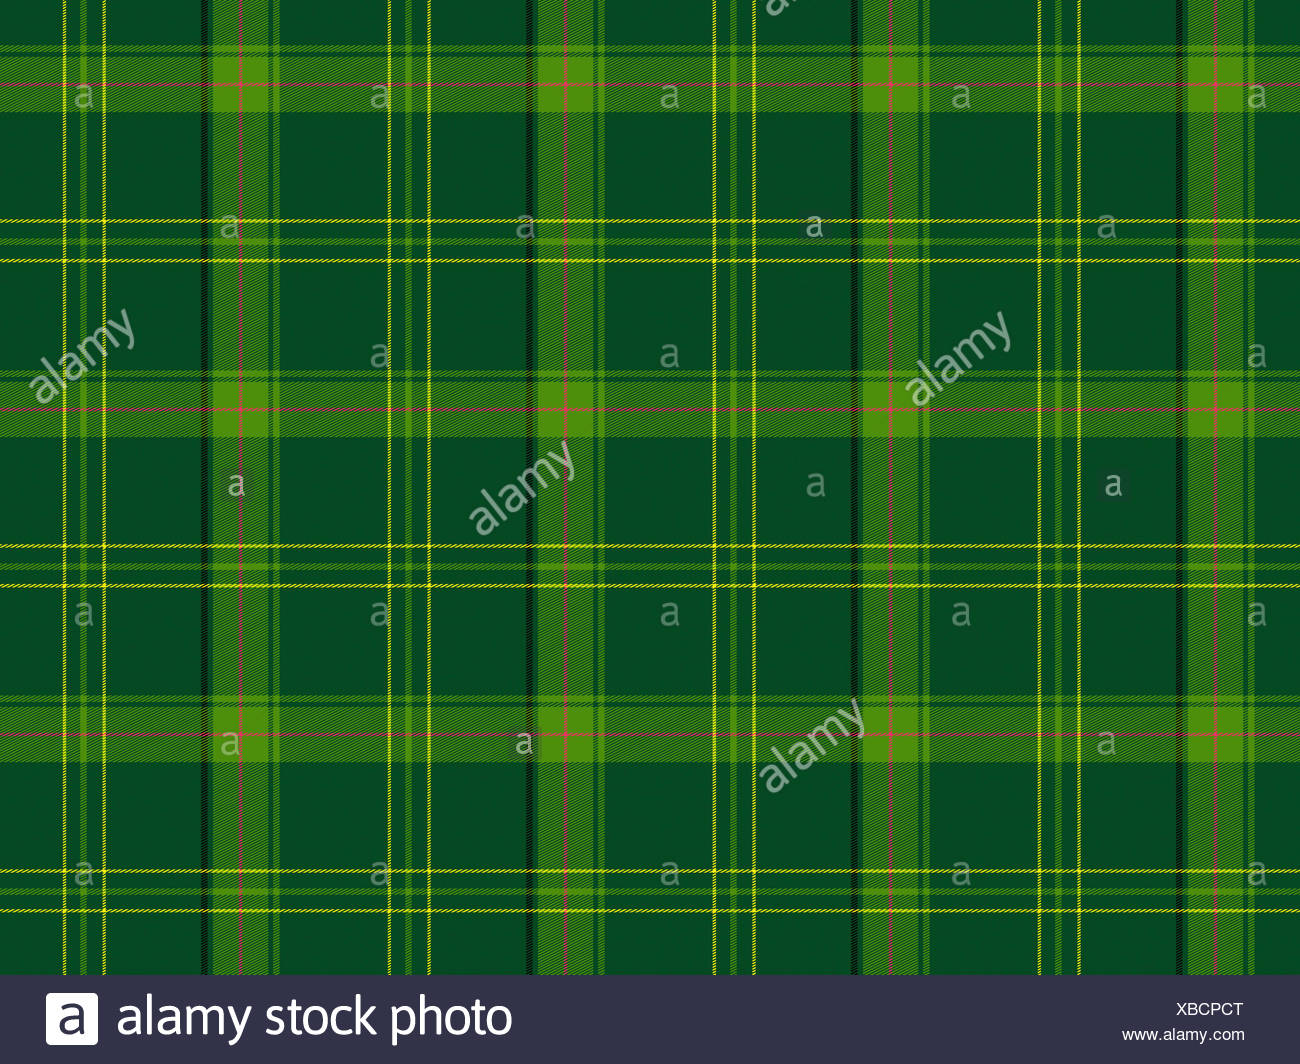 5x5FT Vinyl Photography Backdrop,Abstract,Tartan Pattern Scottish Background for Selfie Birthday Party Pictures Photo Booth Shoot